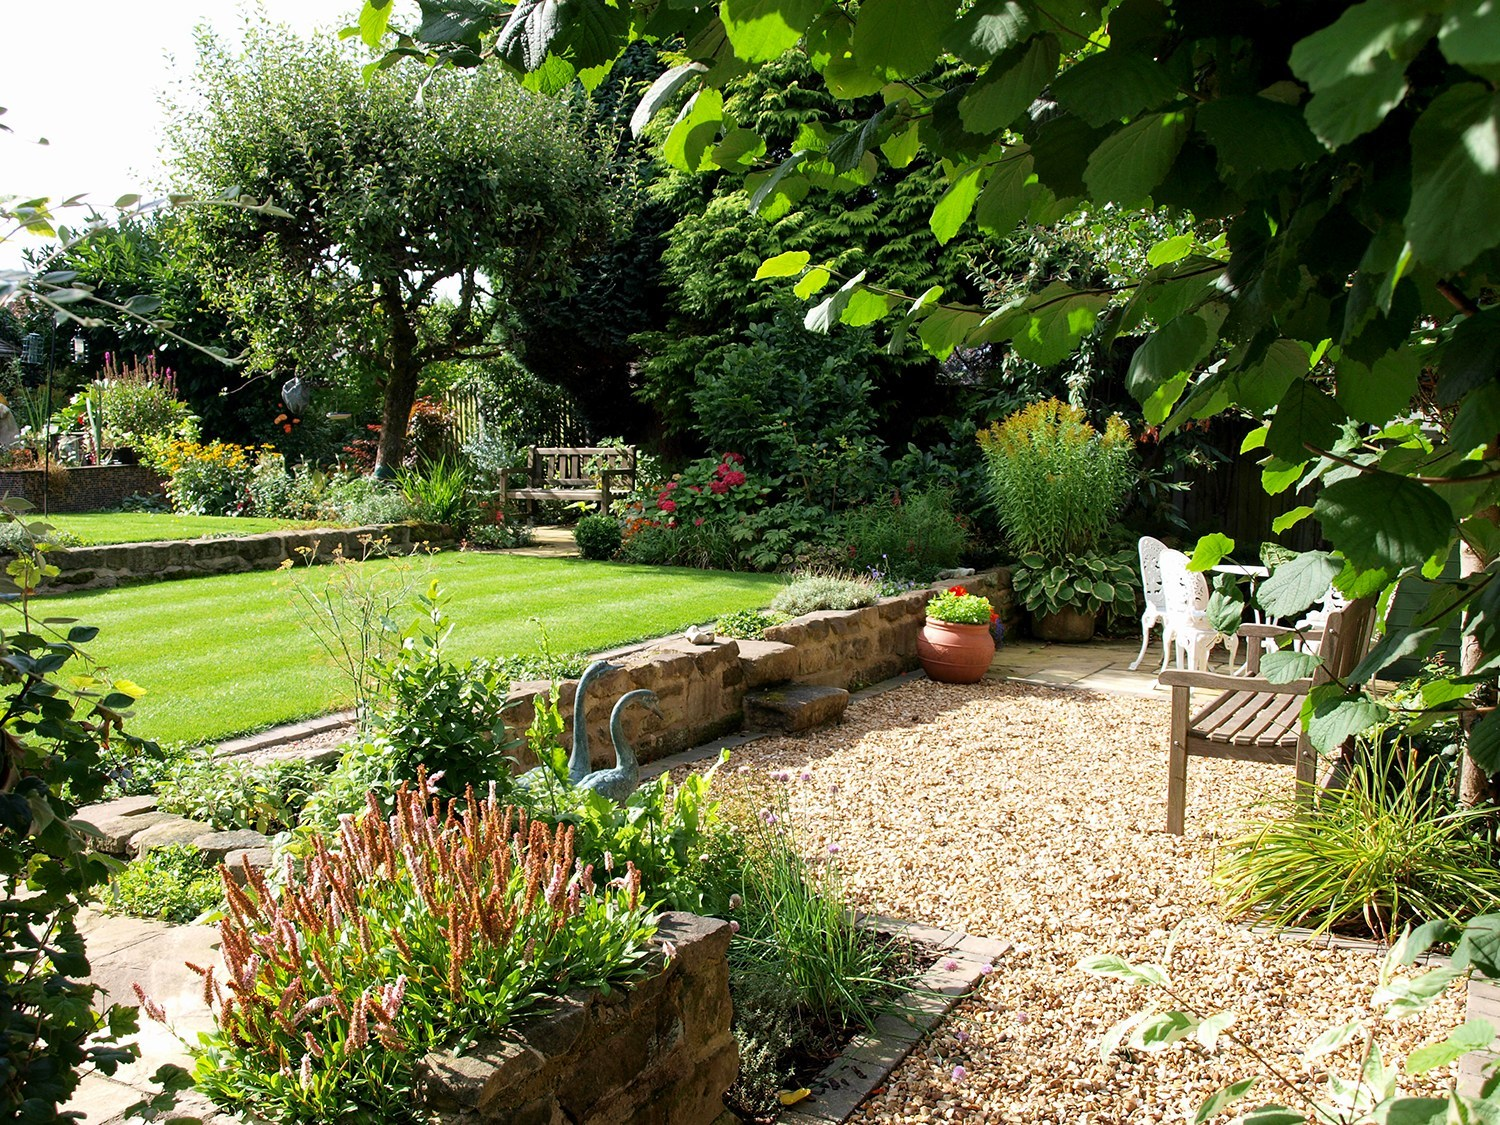 Lush Garden Design Updating a Mature Garden